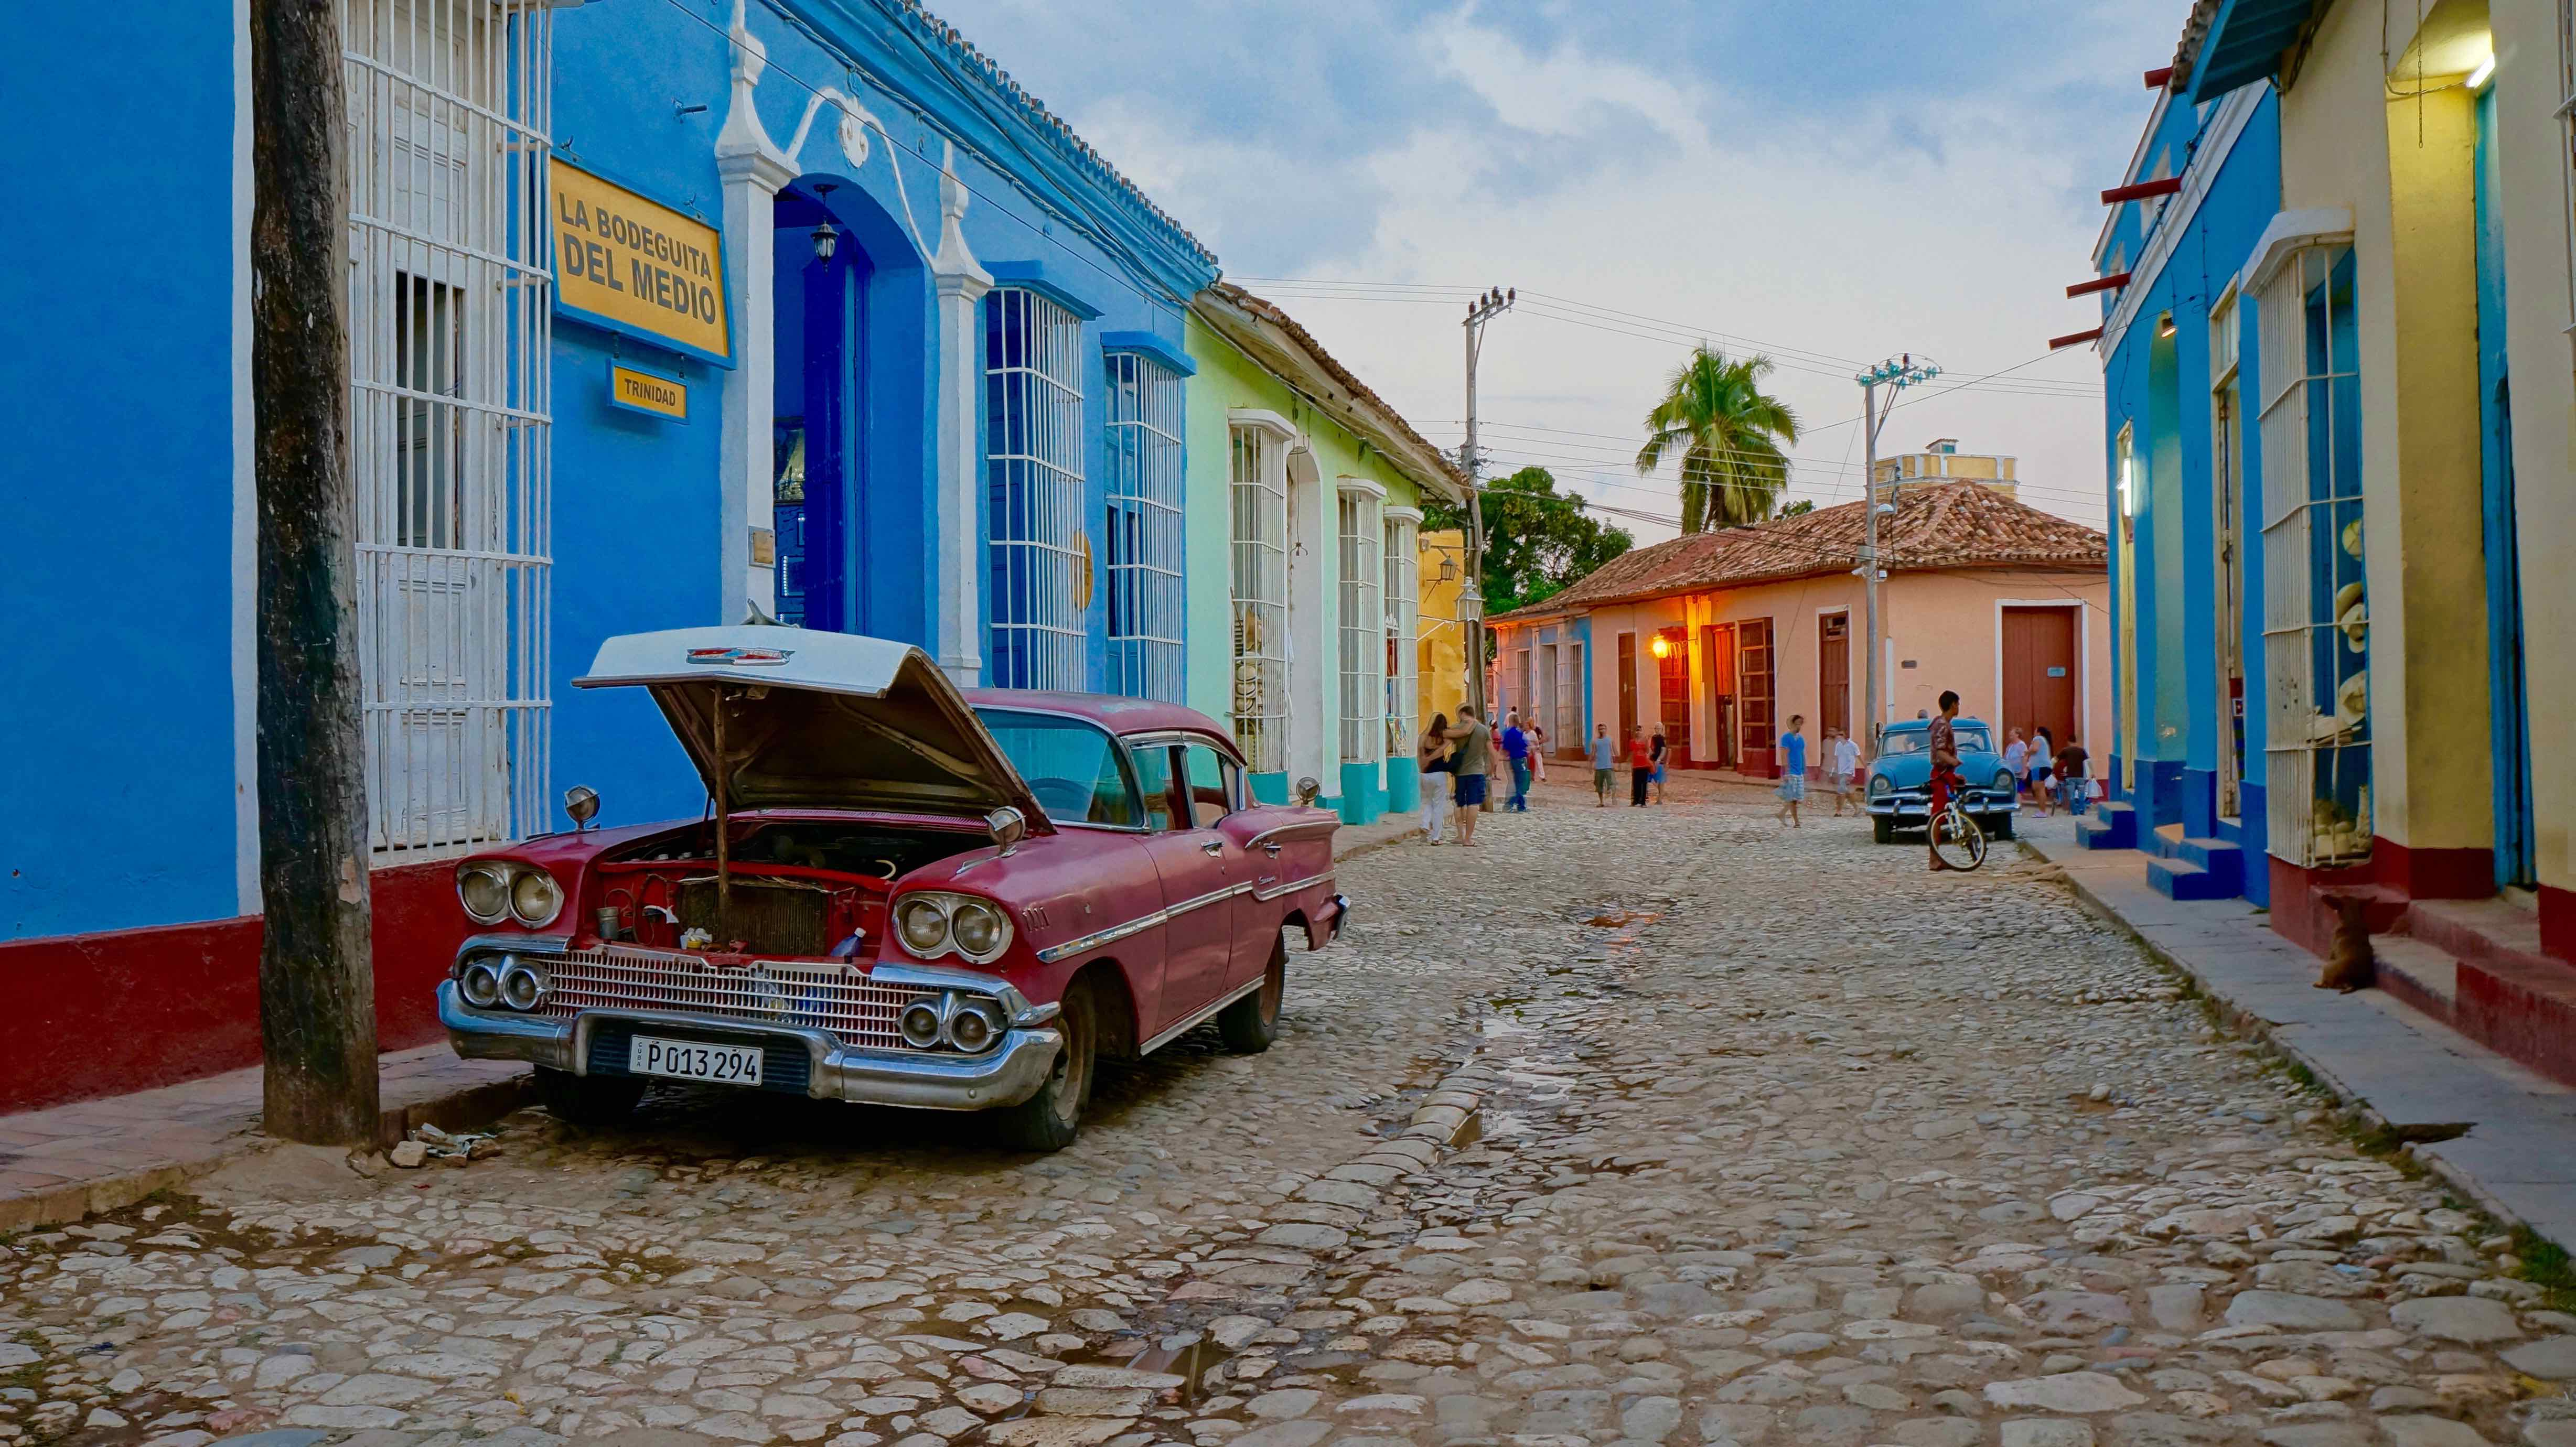 Trinidad Cuba 5 Best Things To Do In Trinidad Cuba Where S The Gringo